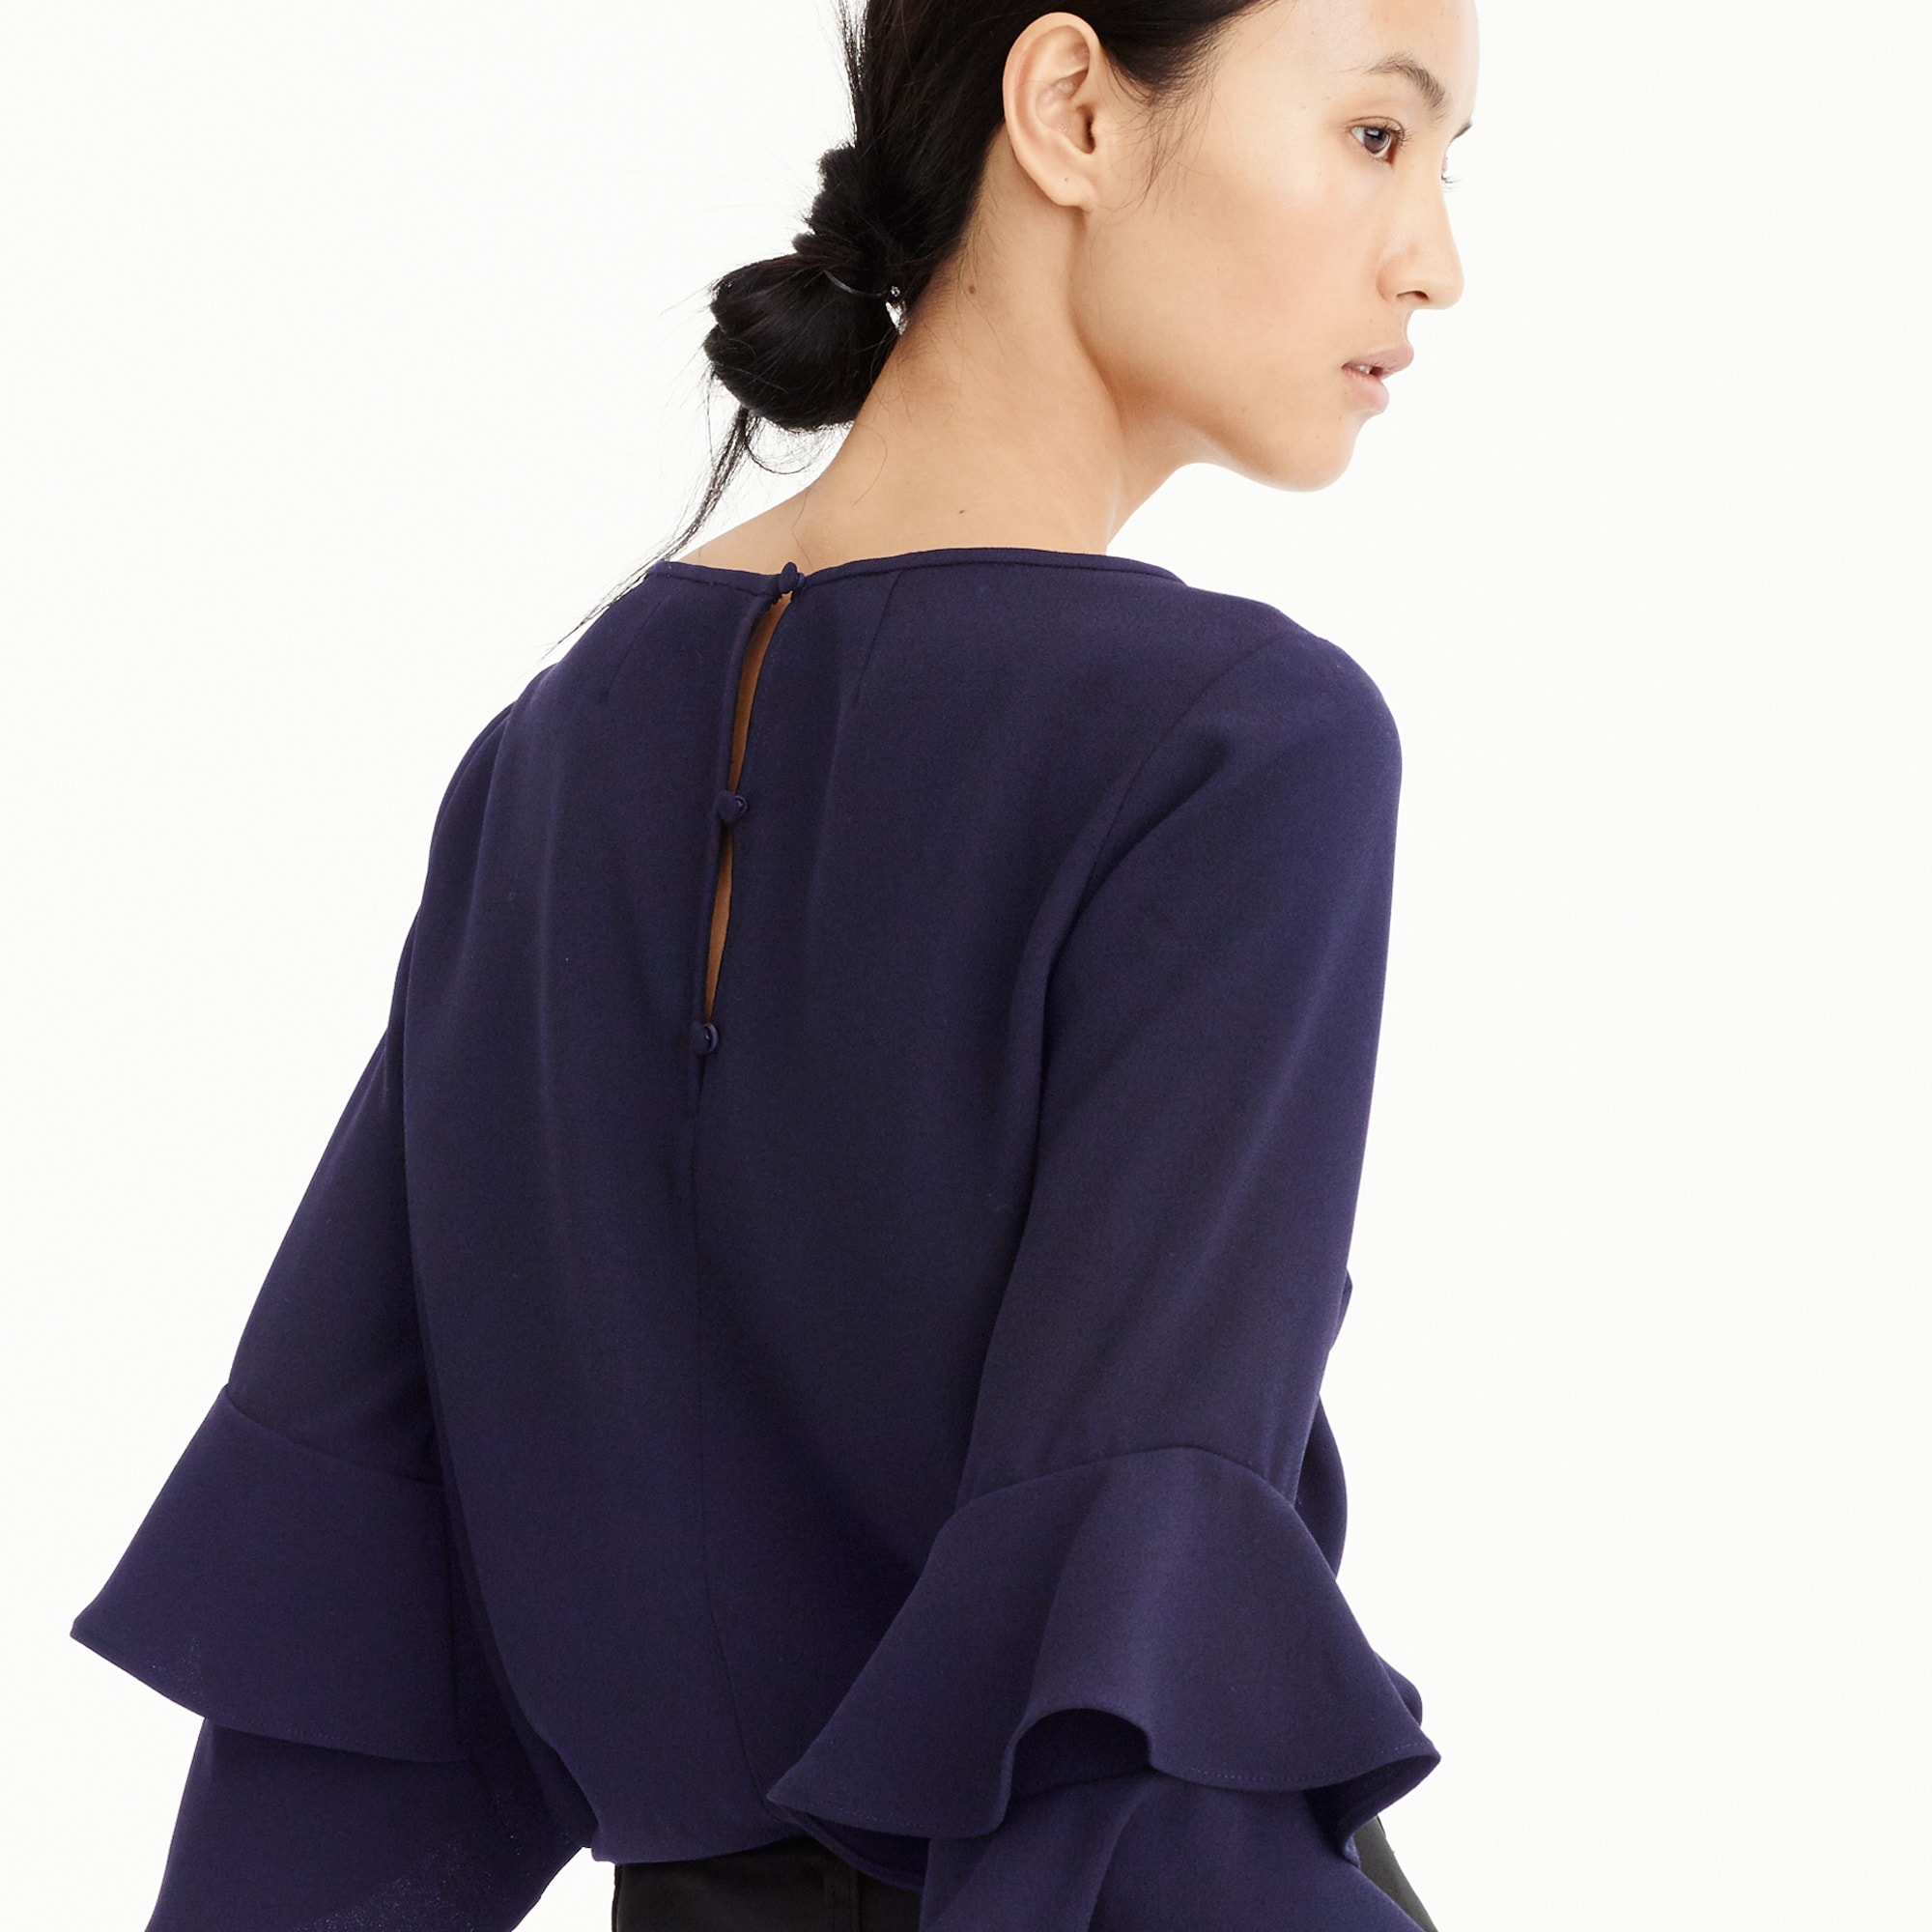 Image 3 for Petite Tiered bell-sleeve top in drapey crepe